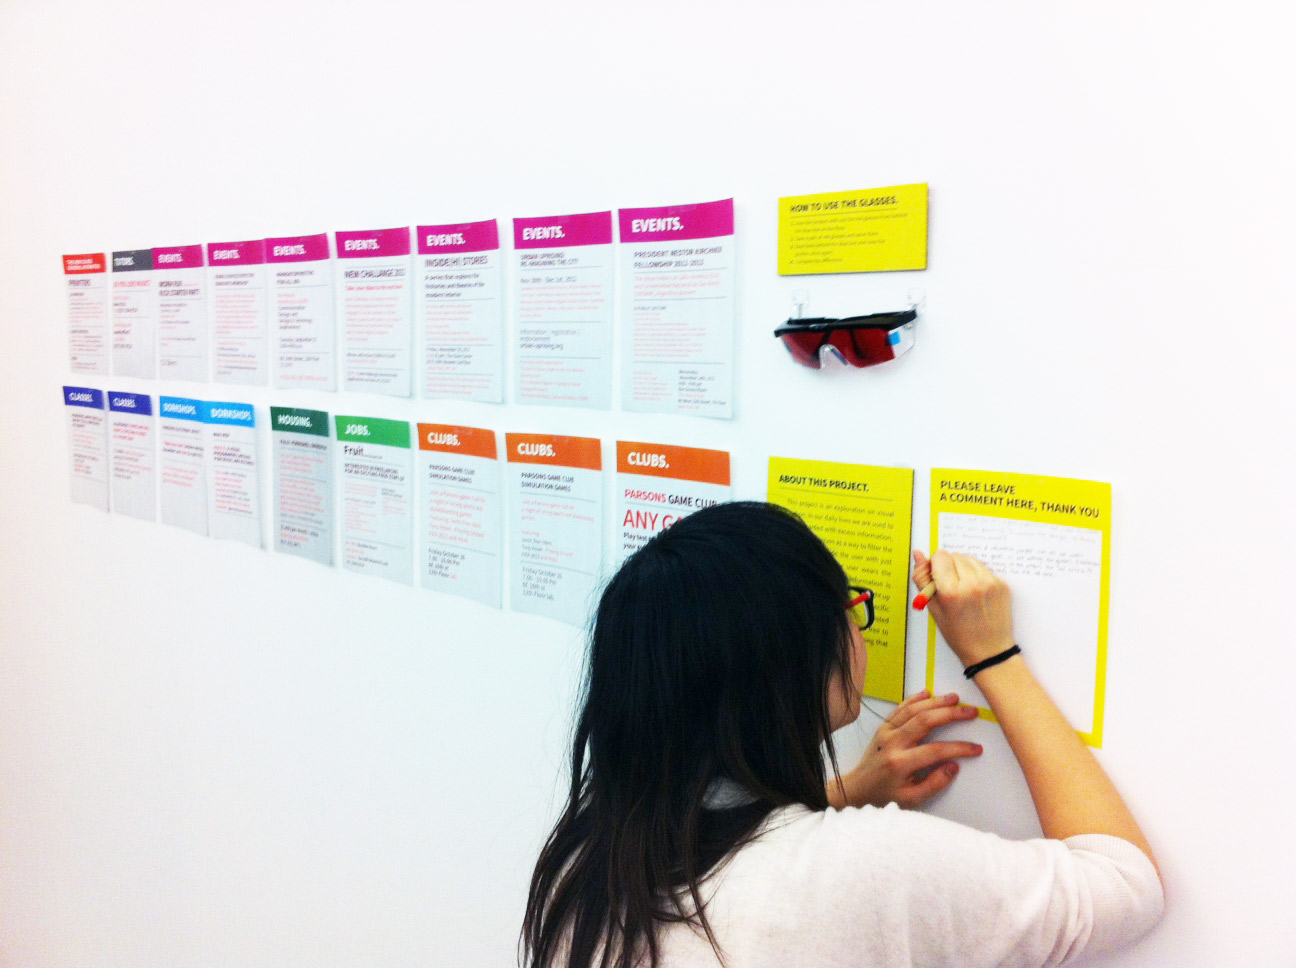 User testing 2 : Getting feedback from users.